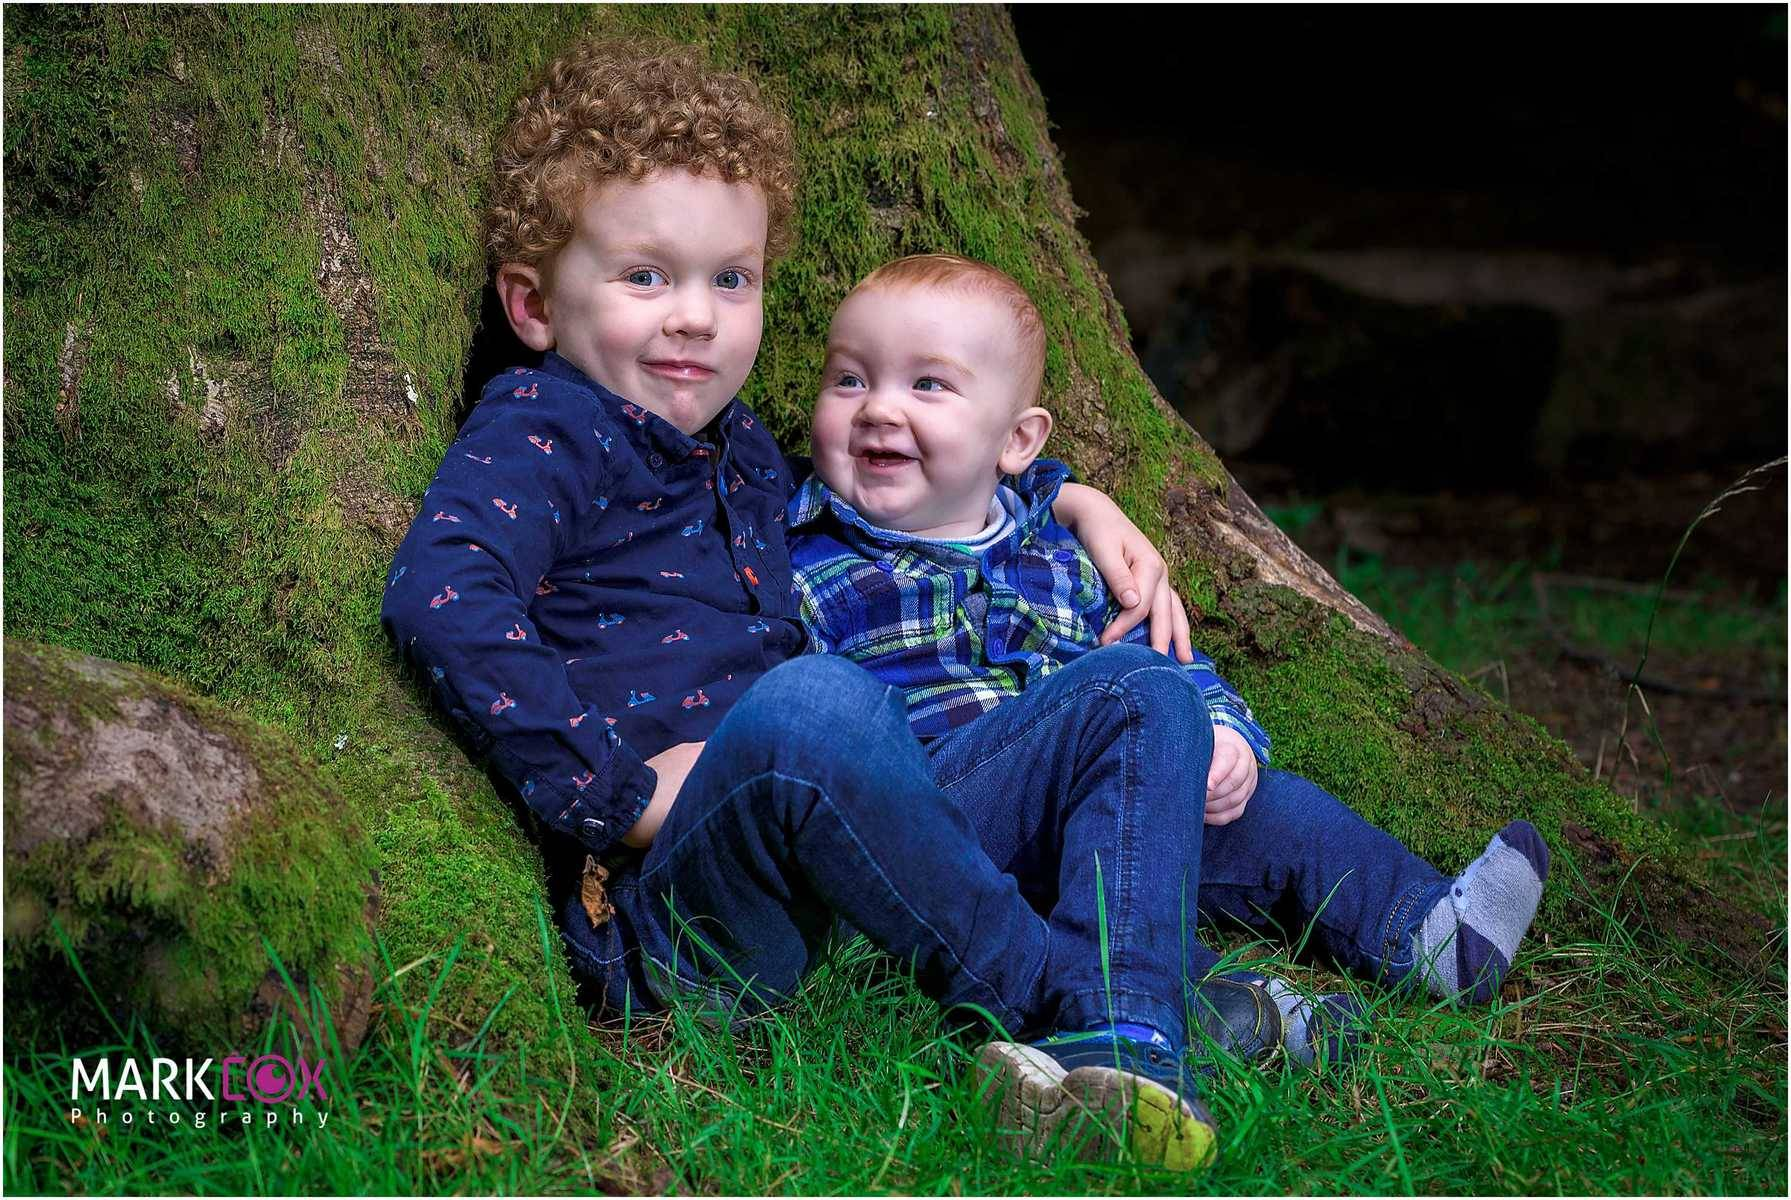 Two boys sat by a tree